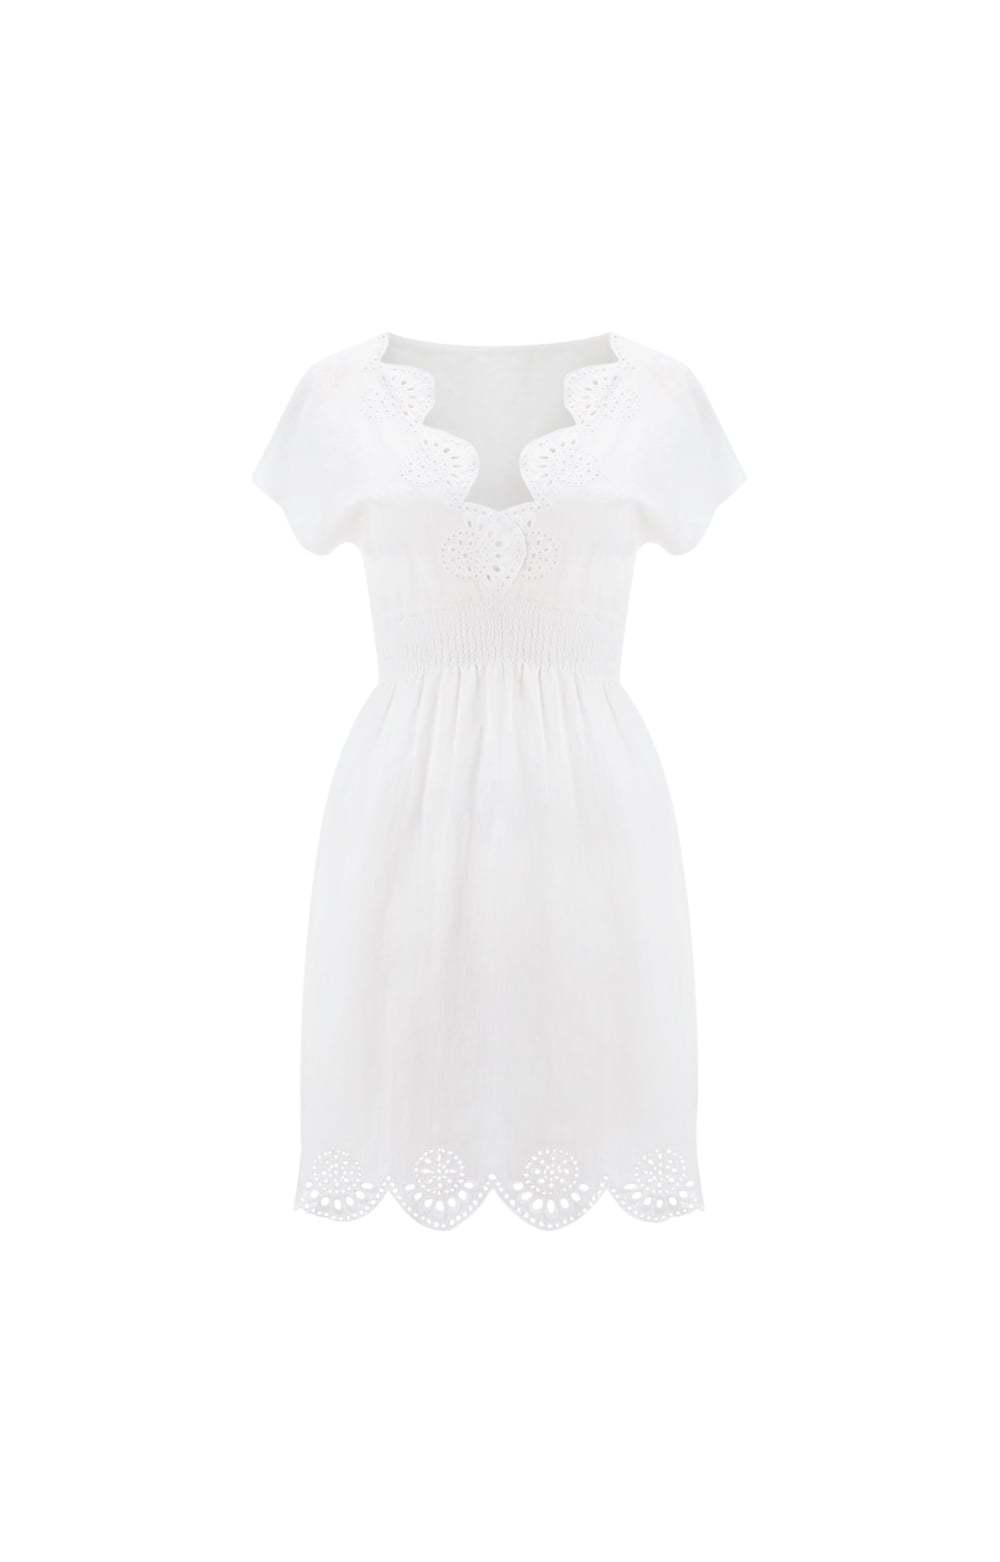 White Mykonos Cutwork Ruched V Neck Dress Size: - neckline: v-neck; pattern: plain; predominant colour: white; occasions: casual, holiday; length: just above the knee; fit: fitted at waist & bust; style: fit & flare; fibres: cotton - 100%; hip detail: soft pleats at hip/draping at hip/flared at hip; sleeve length: short sleeve; sleeve style: standard; texture group: cotton feel fabrics; pattern type: fabric; season: s/s 2016